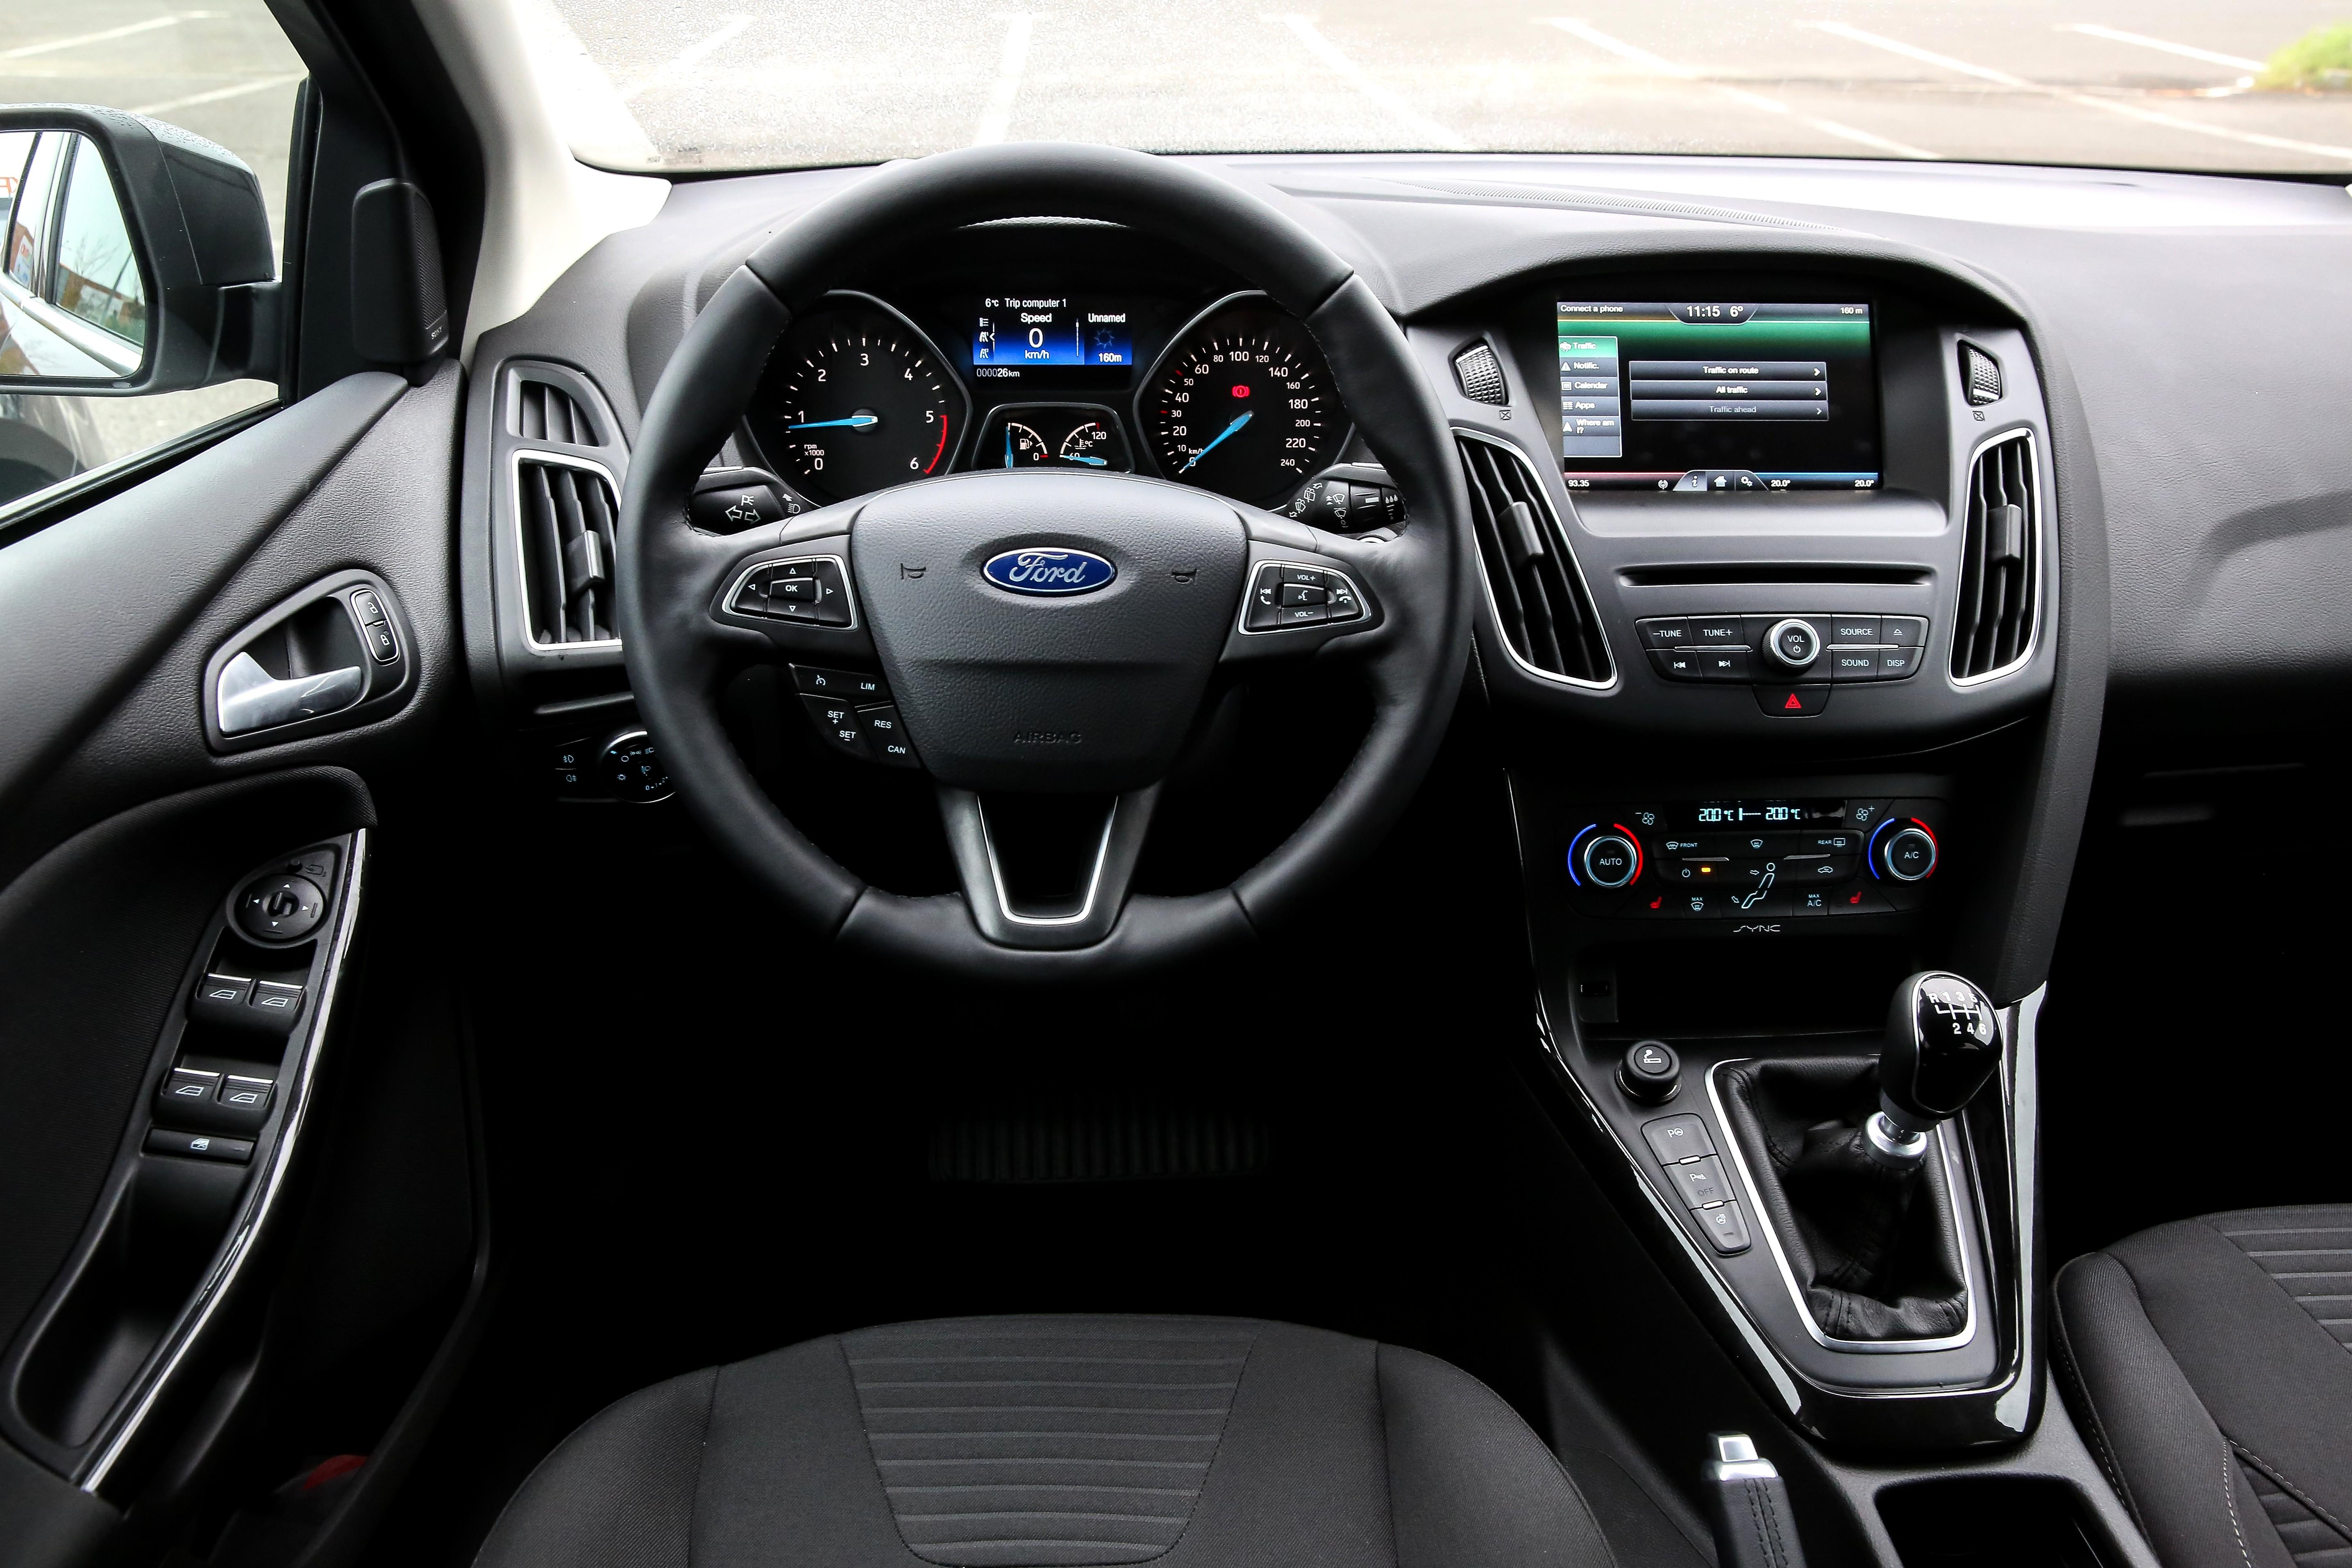 Ford Focus 2015 wallpapers HD quality